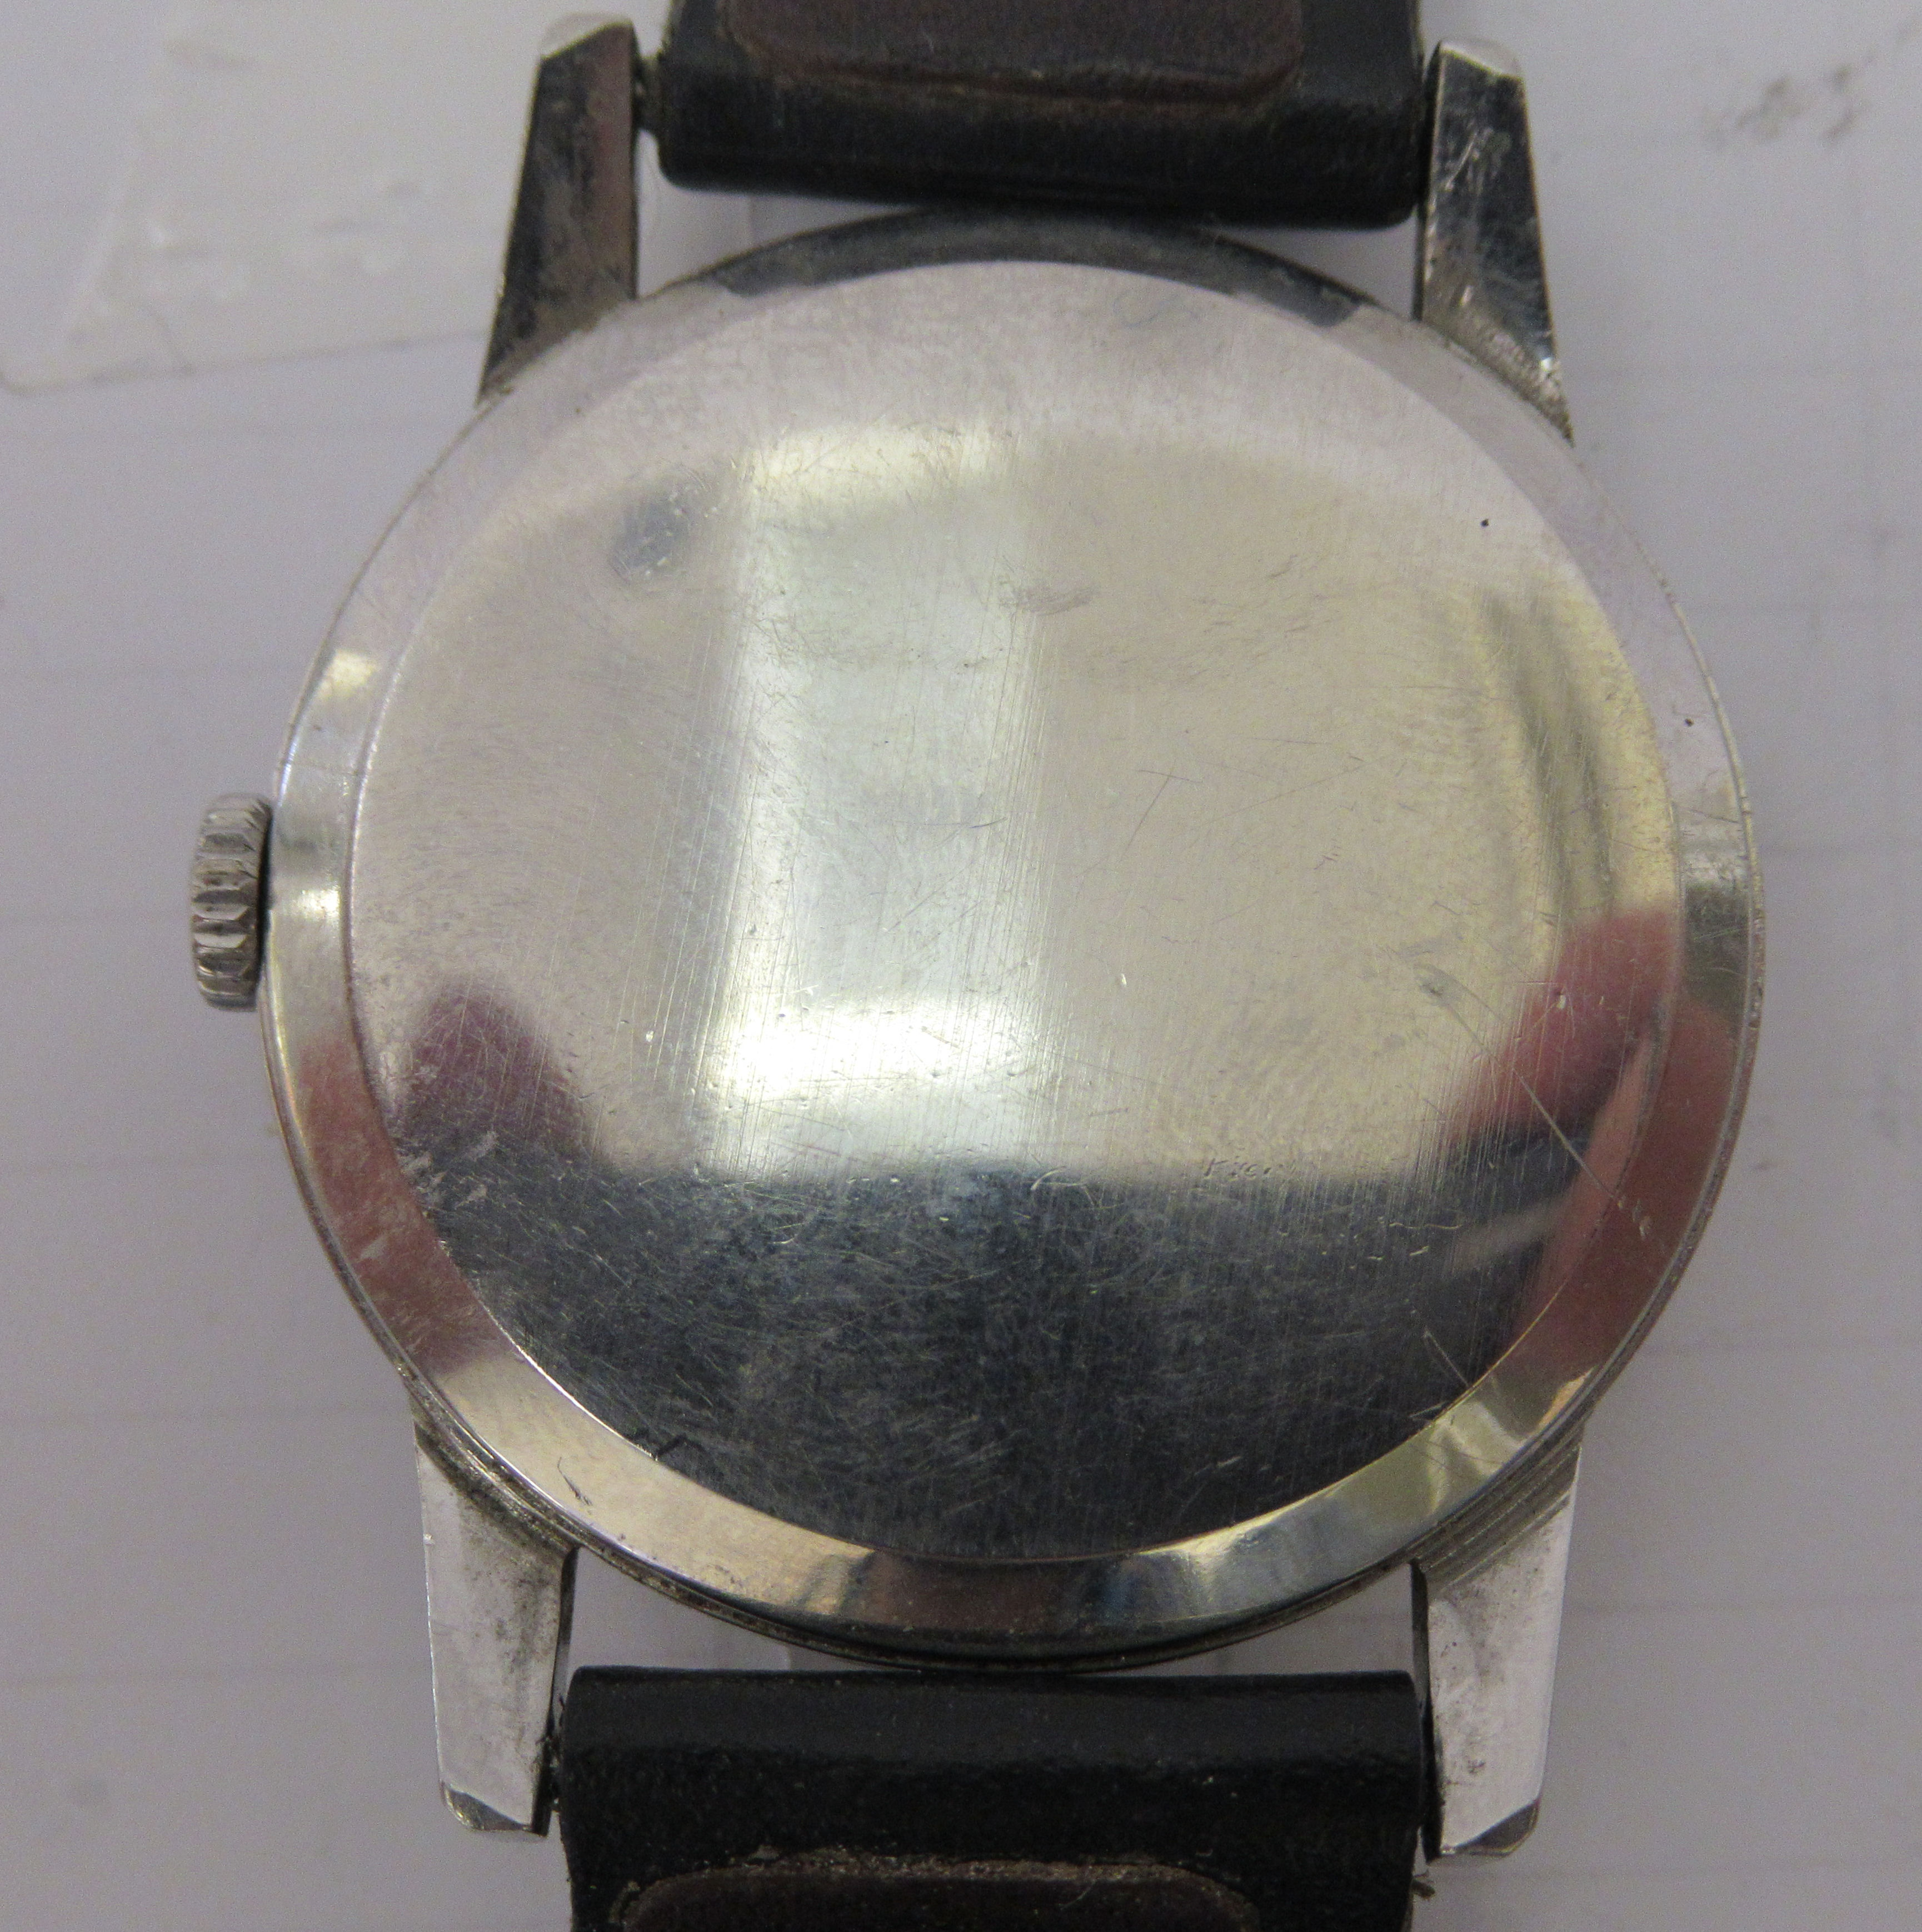 An Omega stainless steel cased wristwatch, faced by an Arabic dial with subsidiary seconds, on a - Image 2 of 3